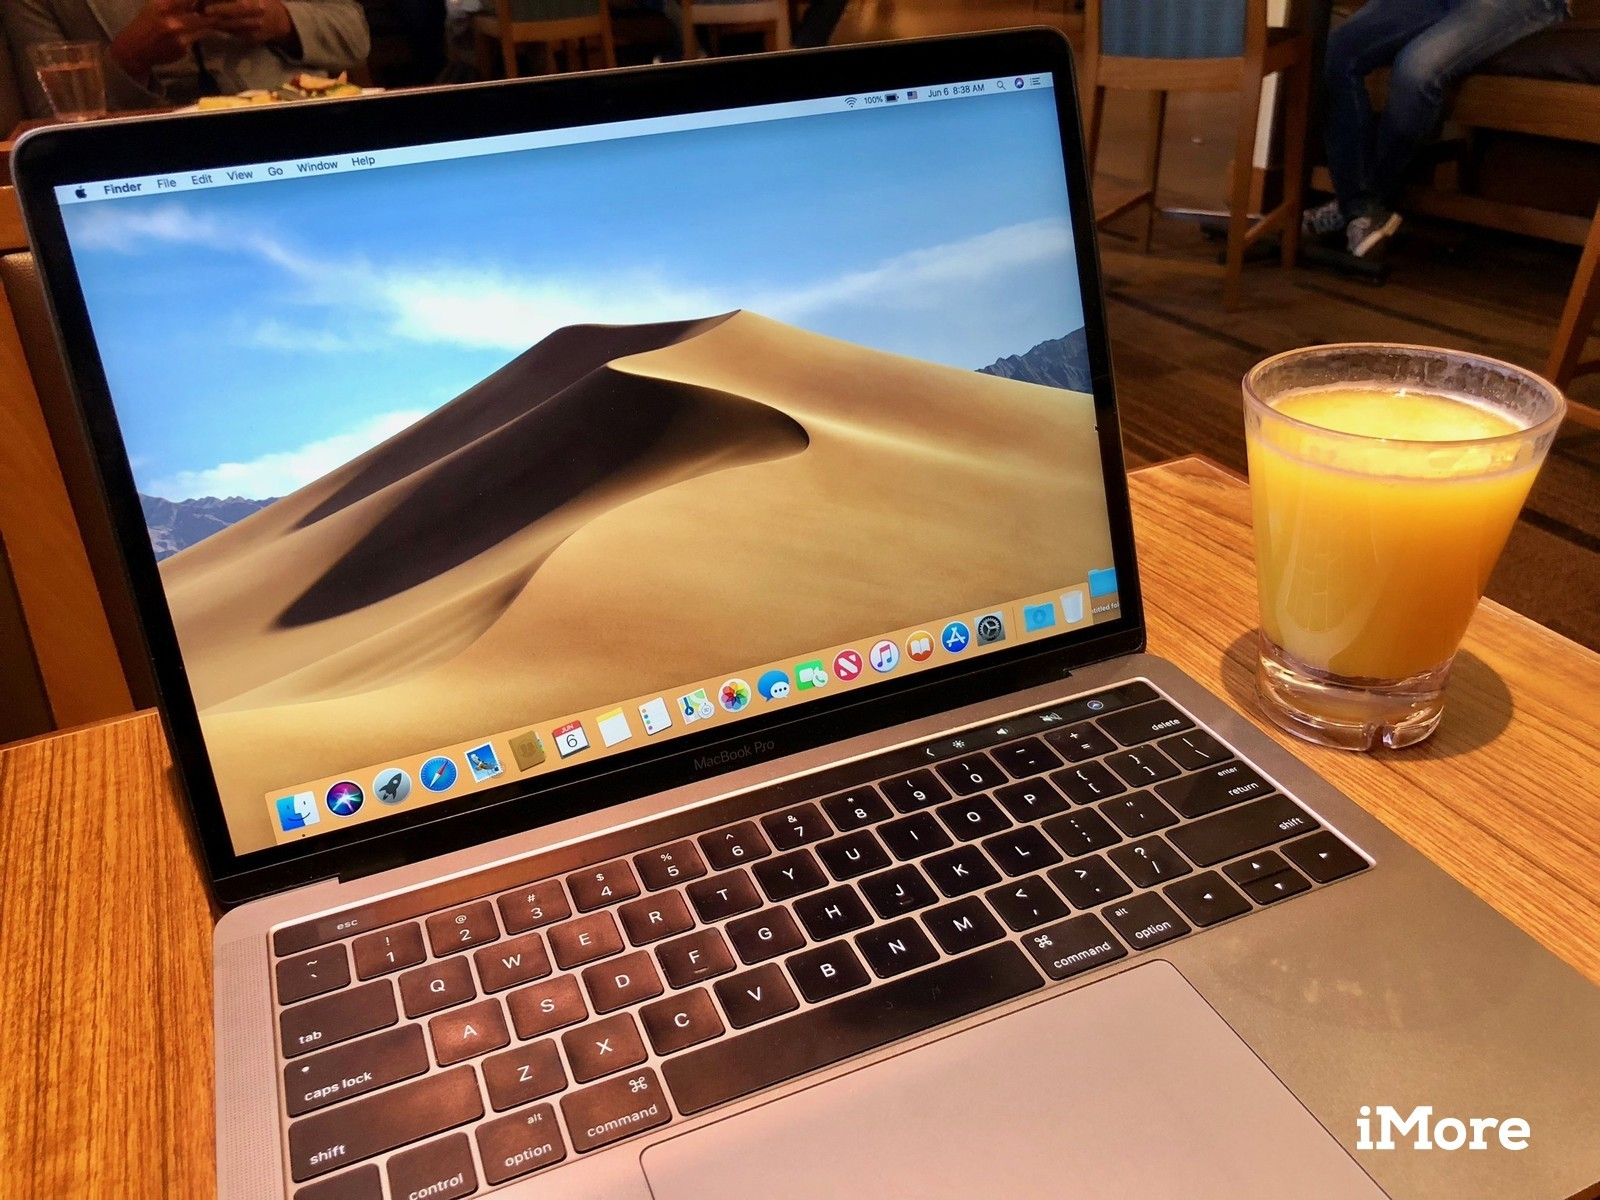 How to download macOS Mojave 10.14.1 public beta to your Mac